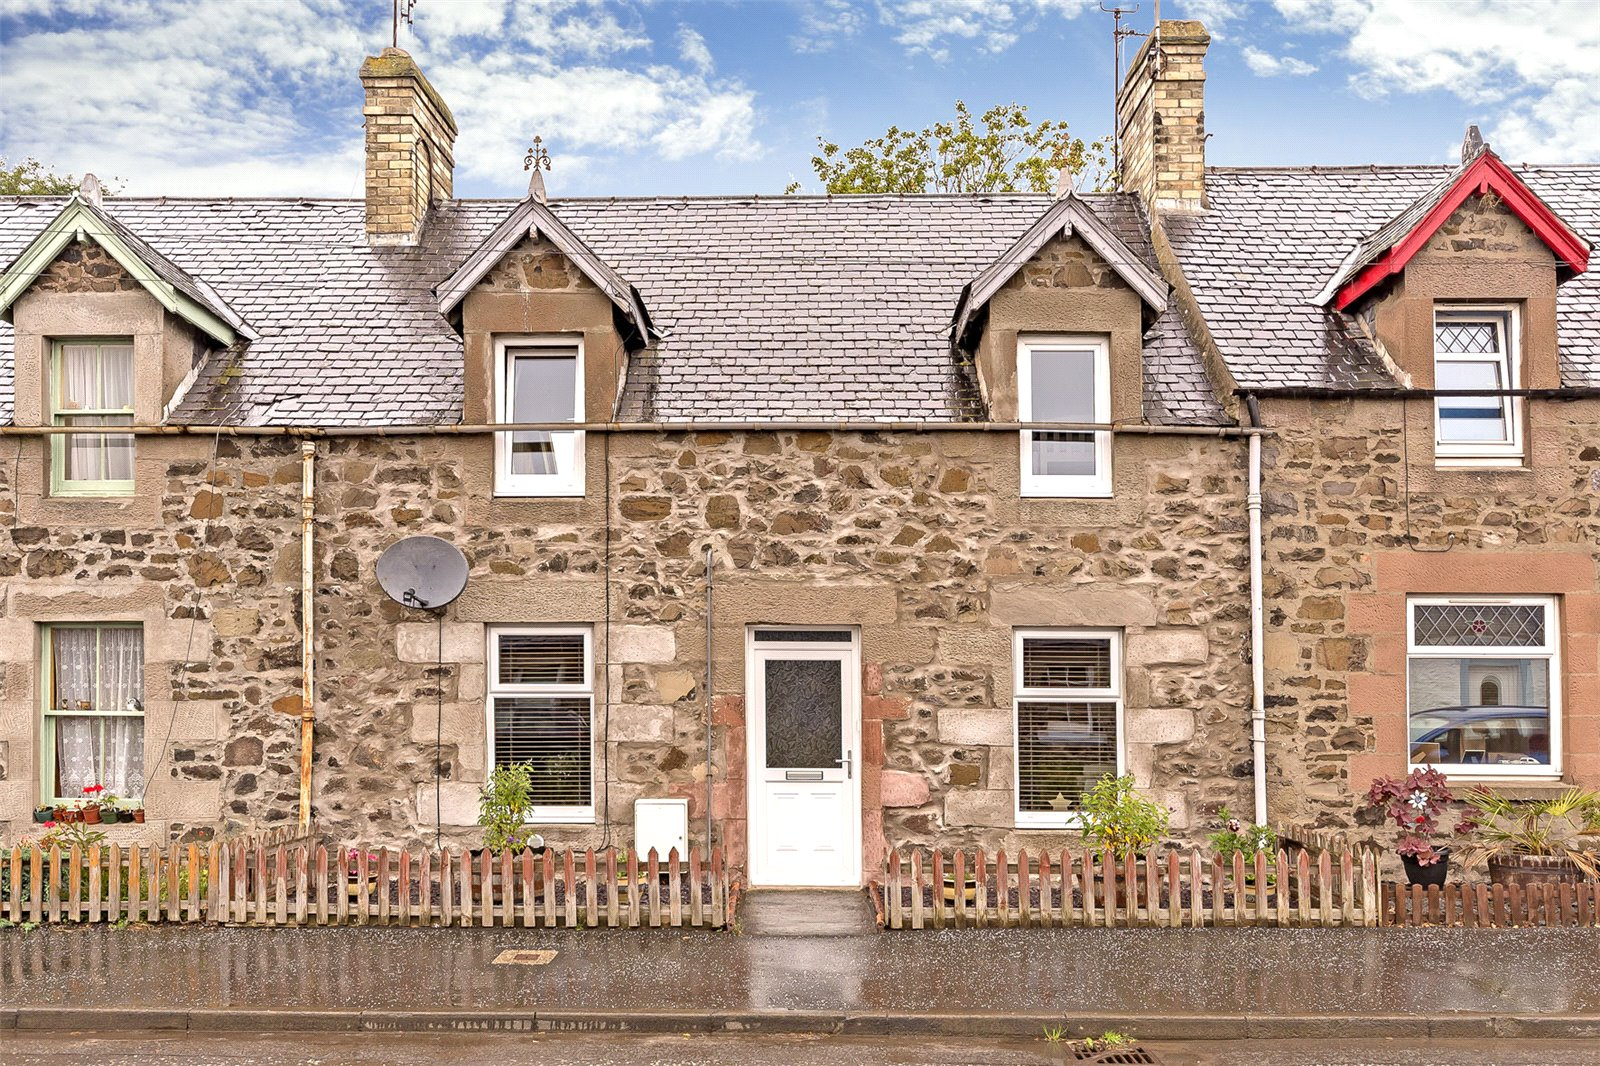 Perth Property of the Week: Rosiehill, Main Street, Glencarse